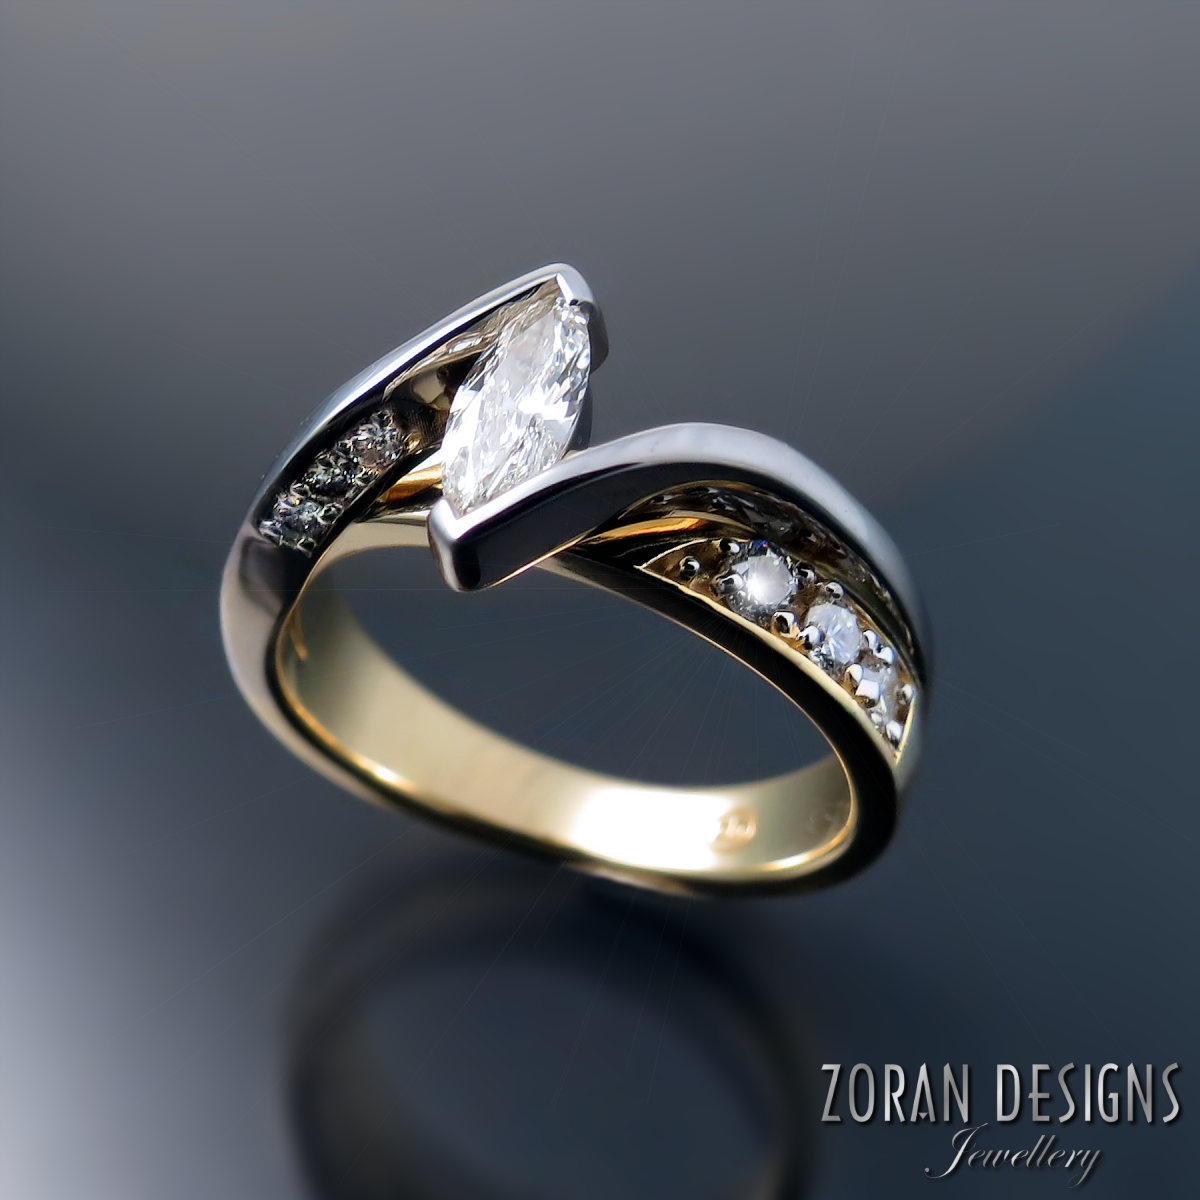 two tone gold engagement ring with marquise diamond.jpg